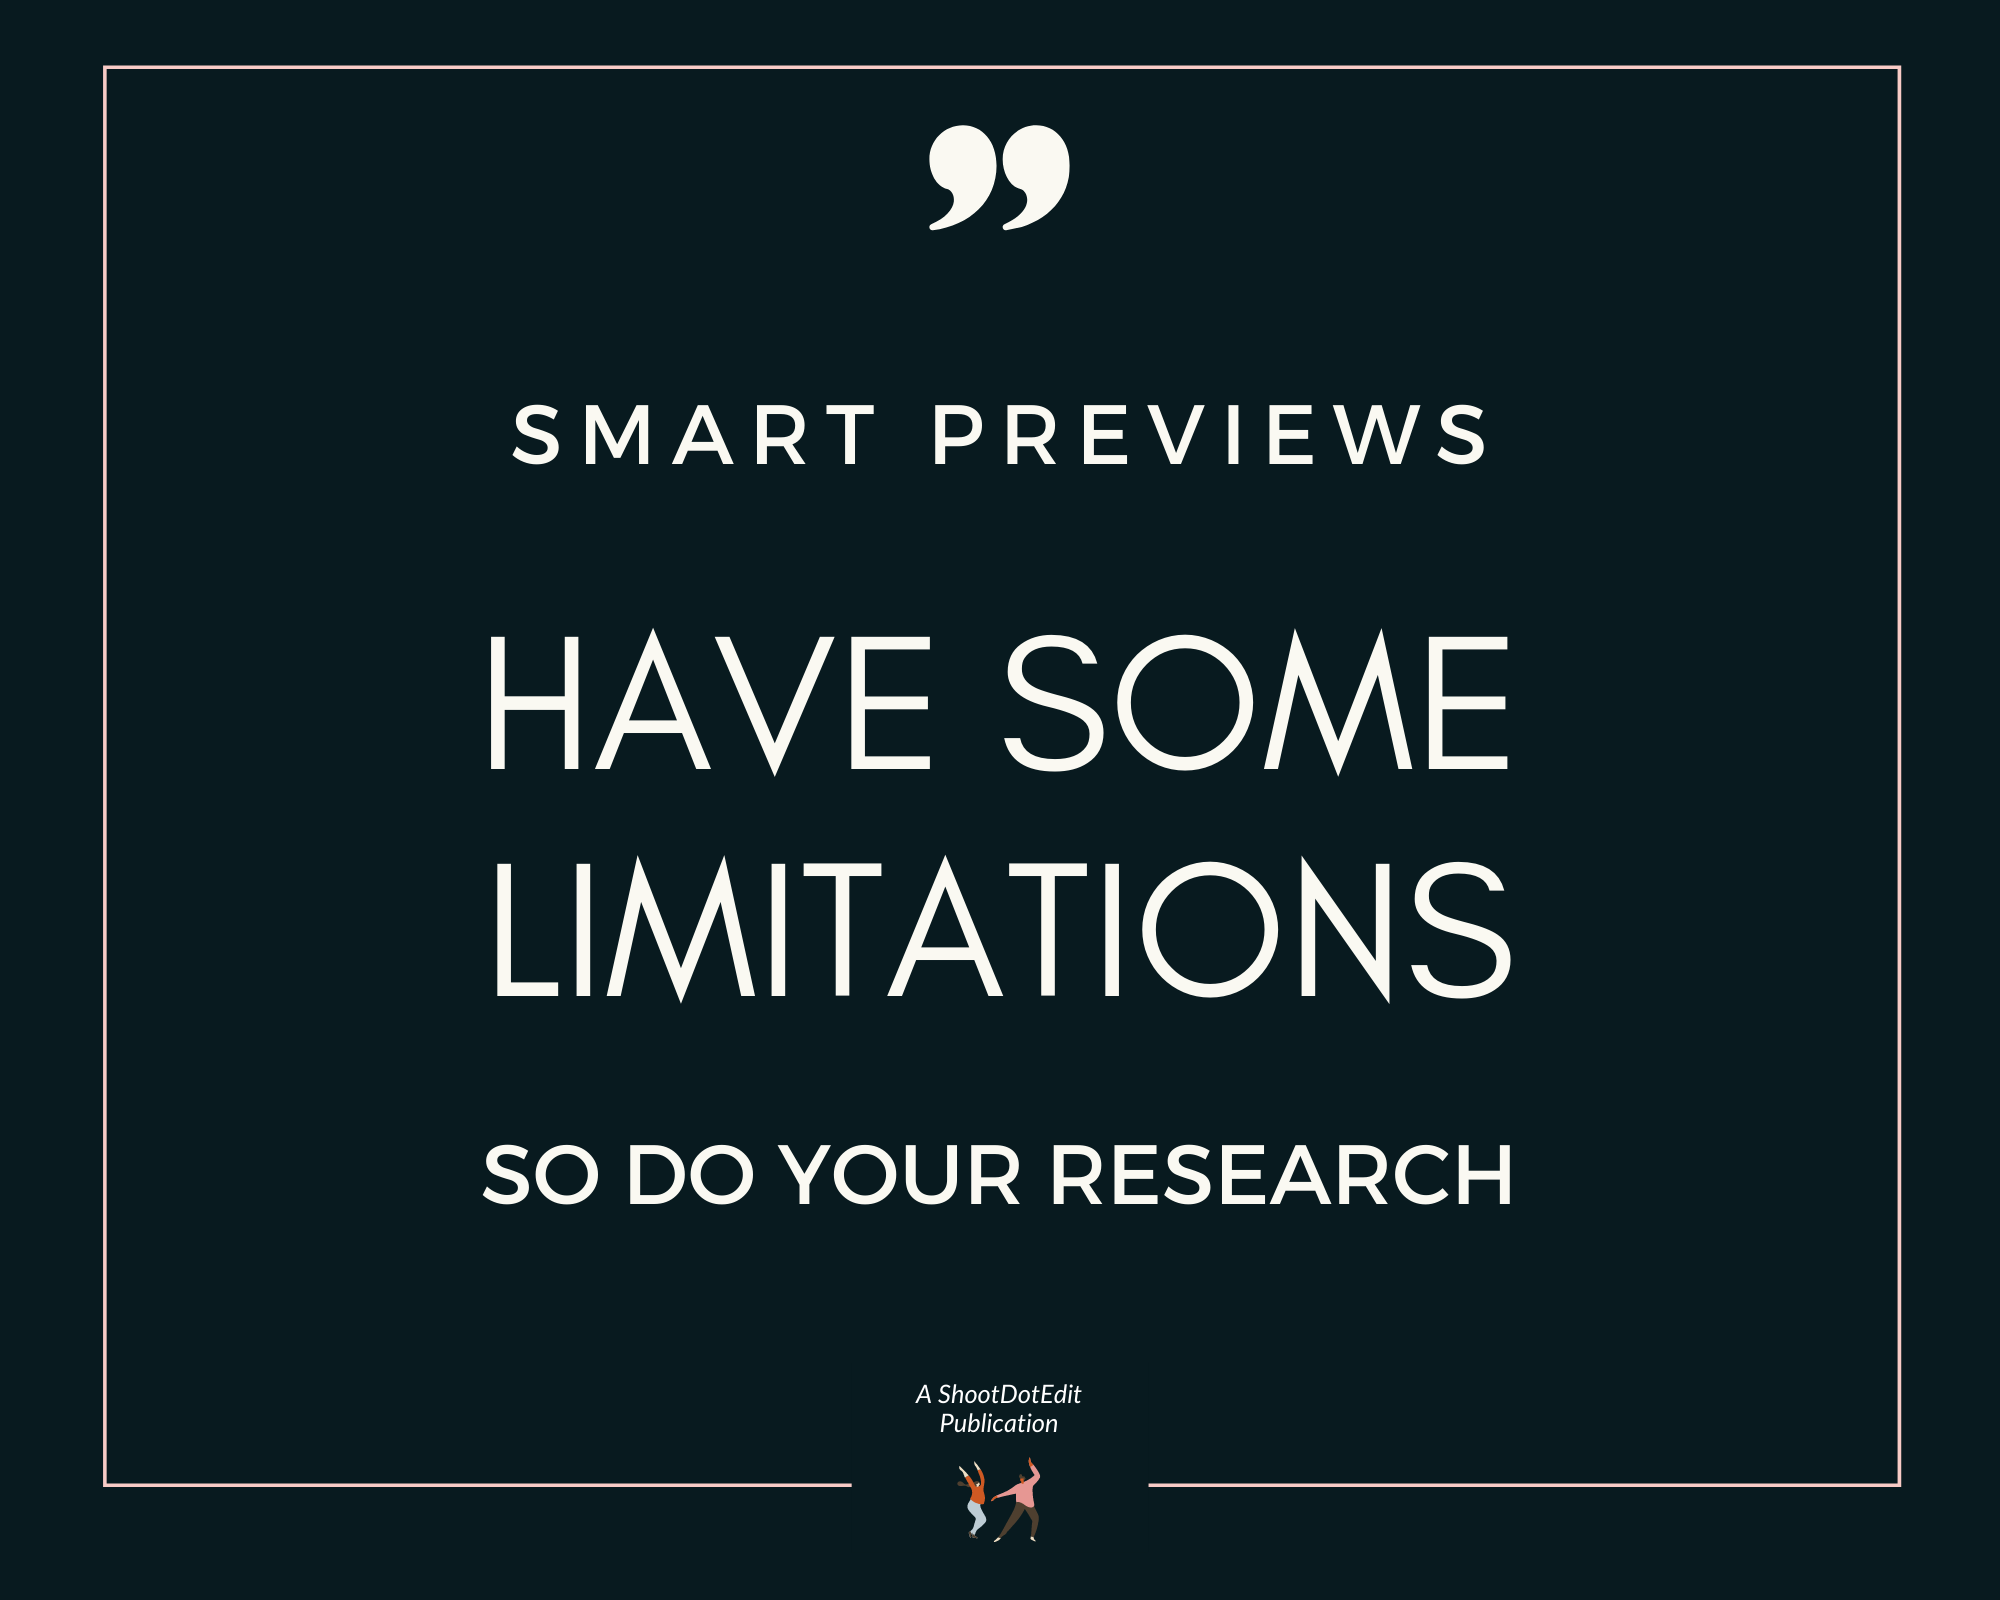 Infographic stating smart previews have some limitations so do your research